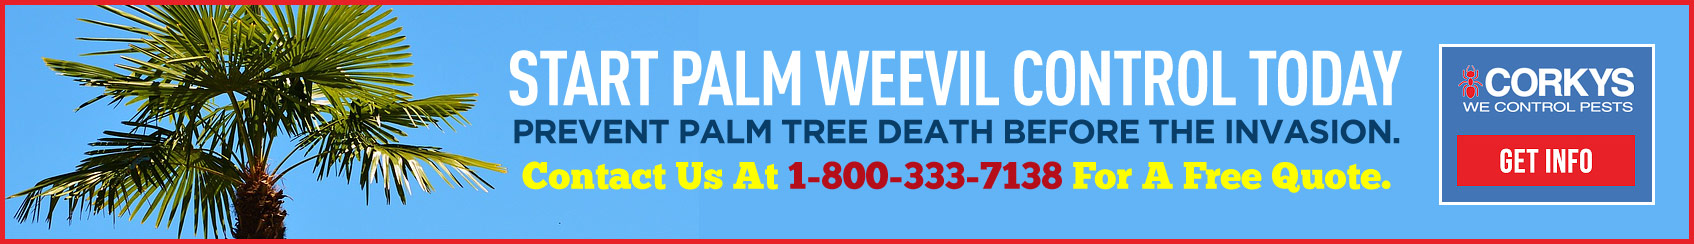 Start Palm Weevil Control Today